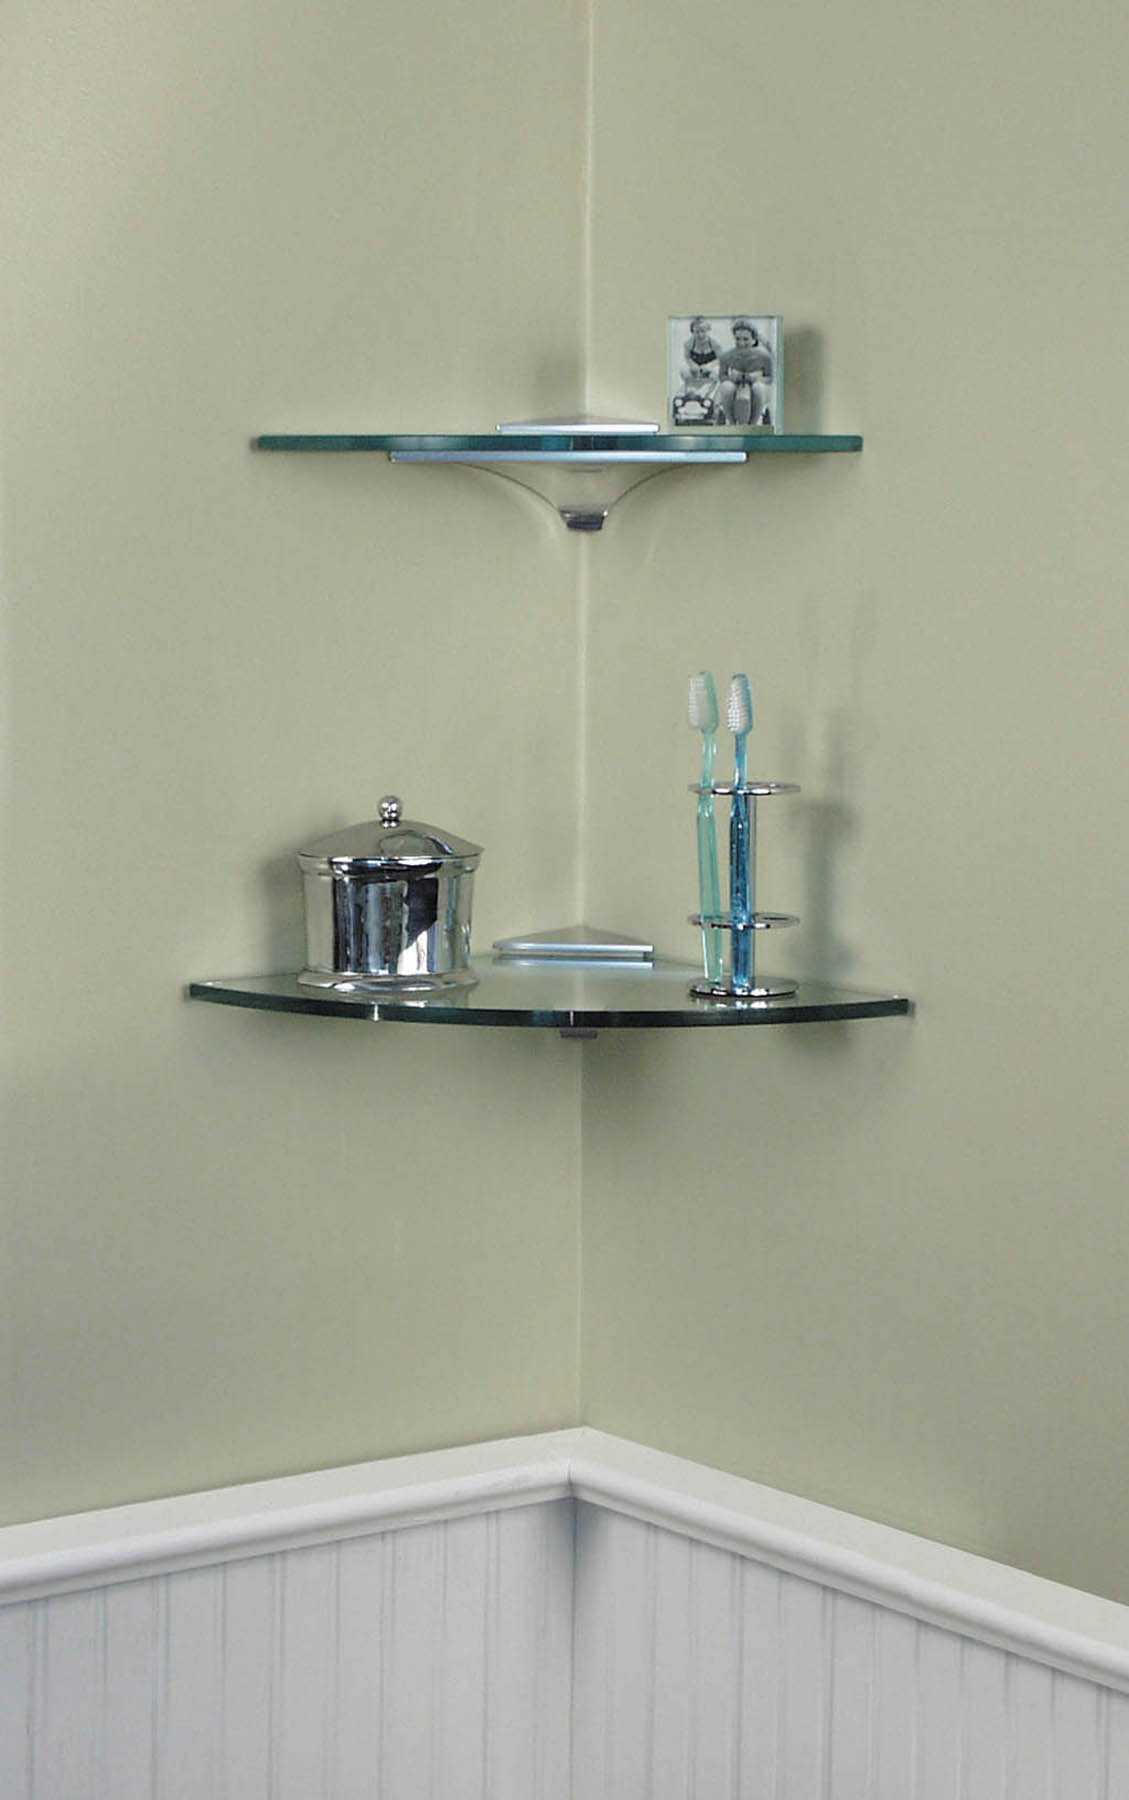 Wonderful Accent Your Bathroom With This 9in X 9in Tempered Glass Corner Shower Shelf In White Our Varied Selection Of Bathroom Accessories Is Sure To Offer Just The Right Finishing Pieces For Your Bath Or Shower Project Corner Shelves,